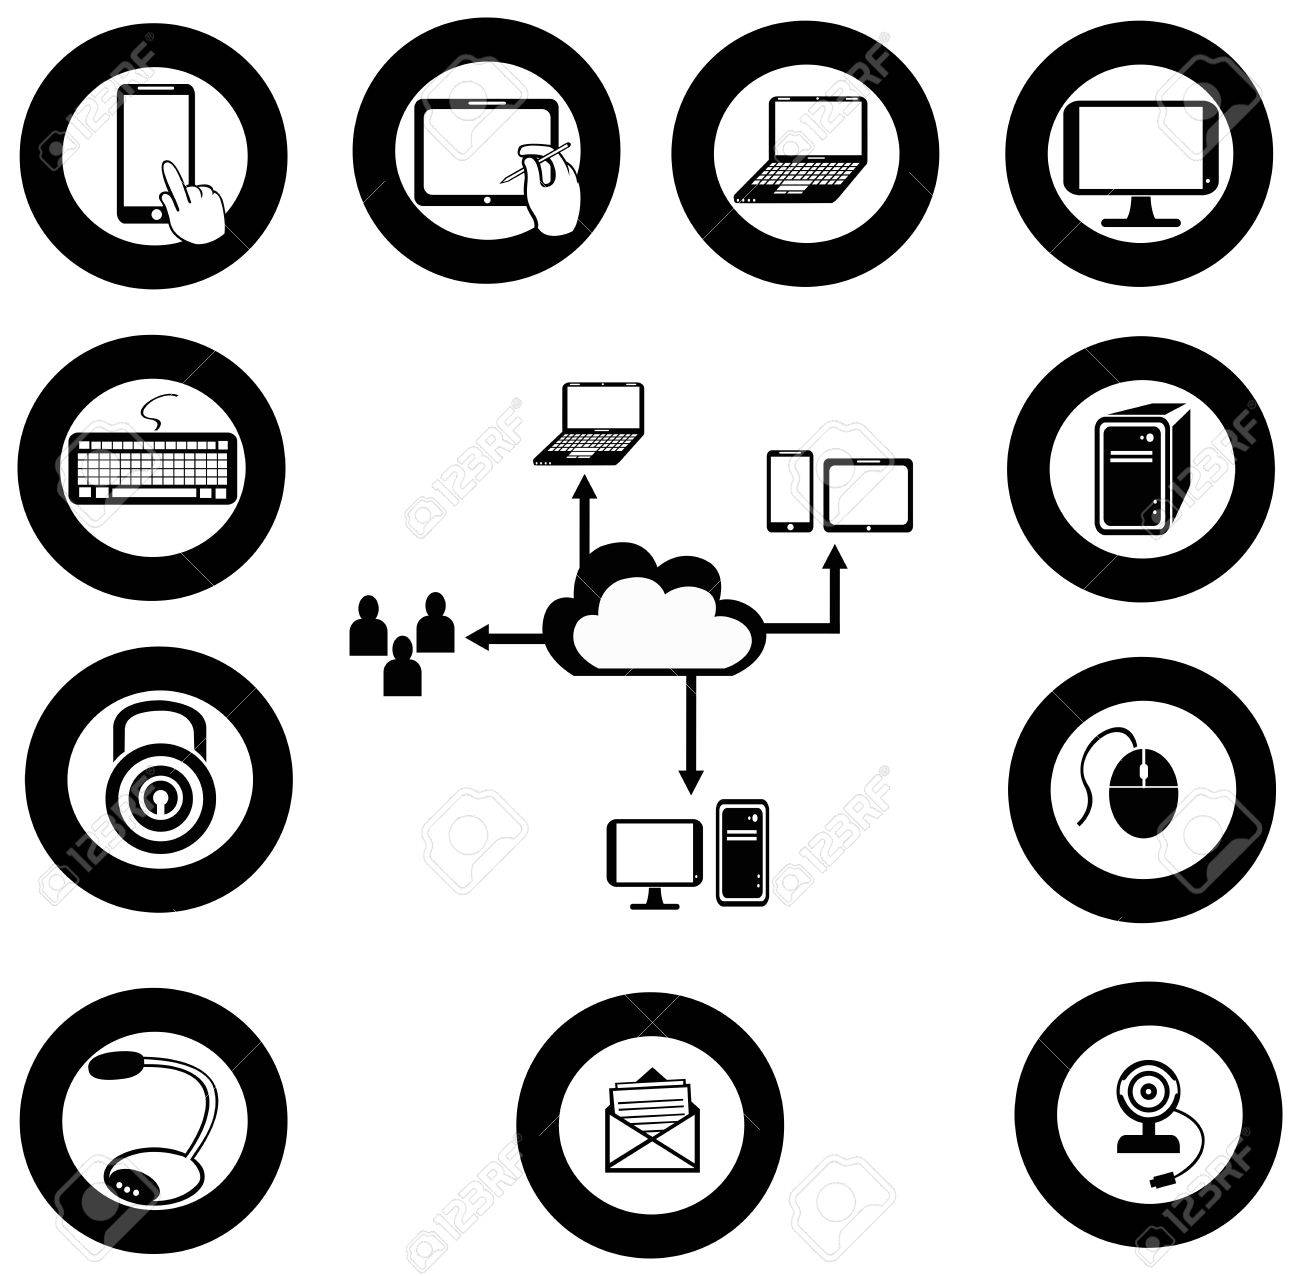 Various IT and network media icon and app collection Stock Vector - 29069469